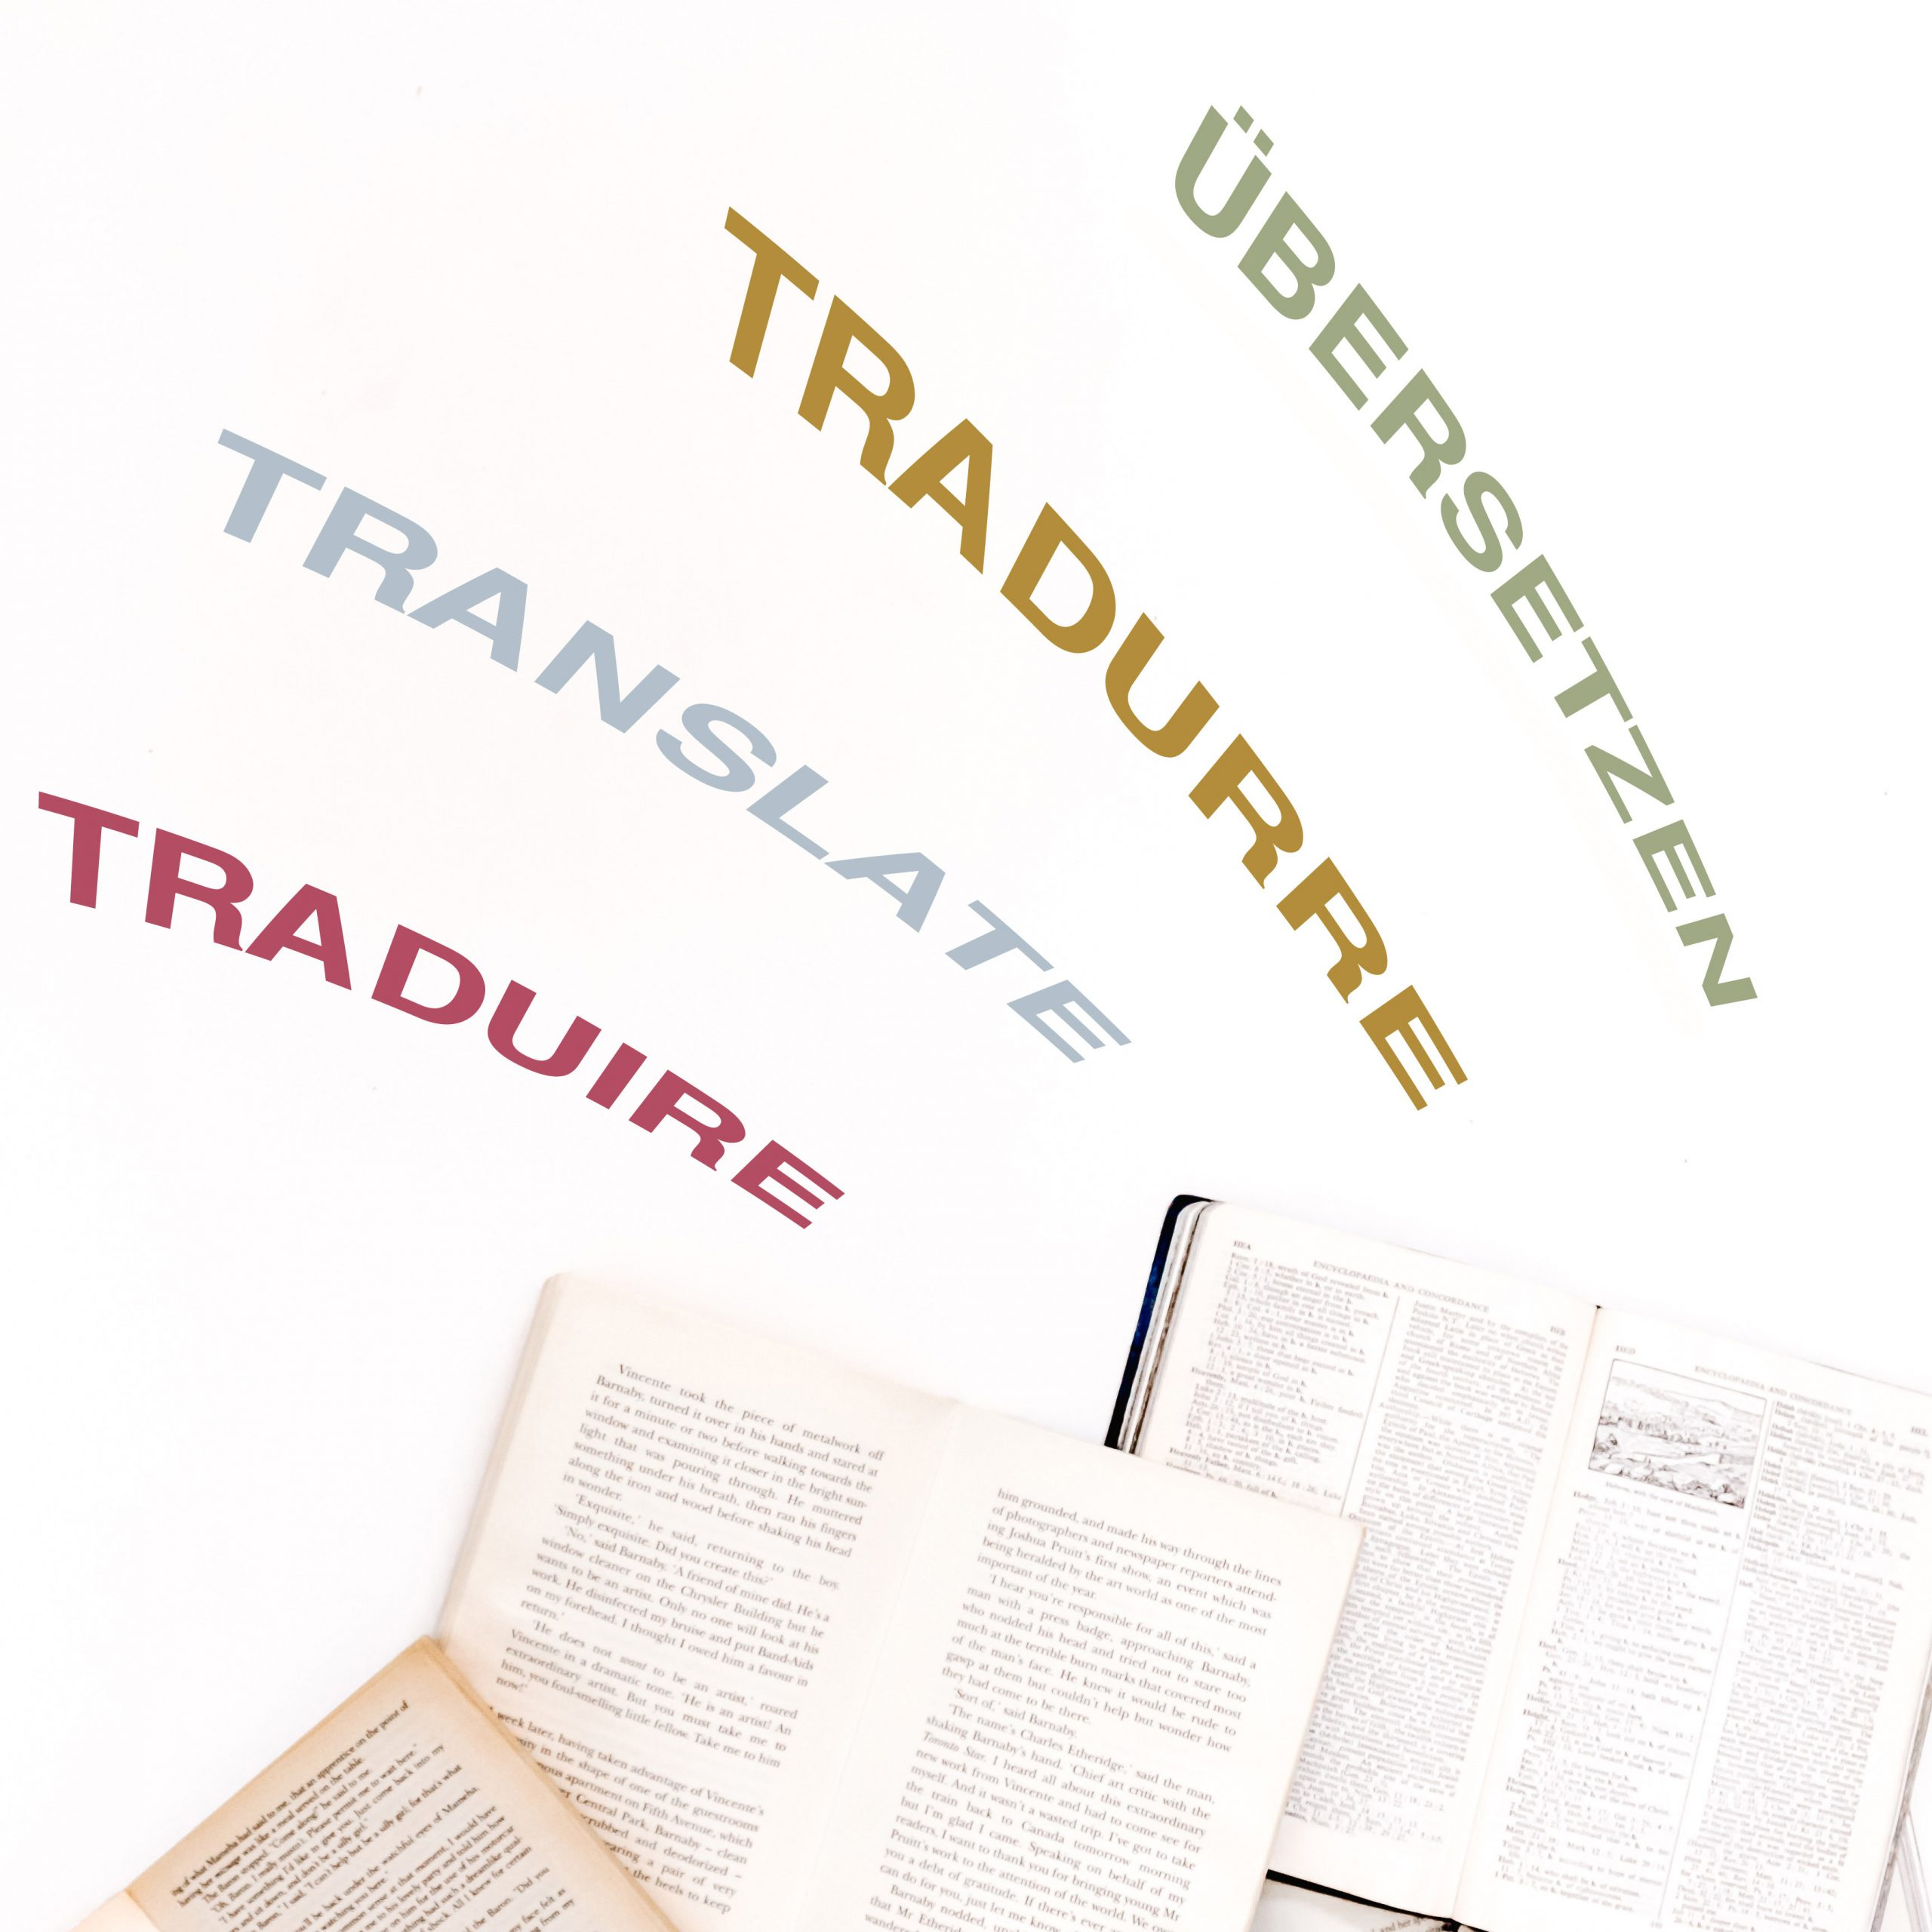 Anyone who speaks more than one language can declare himself or herself a translator: a harsh reality